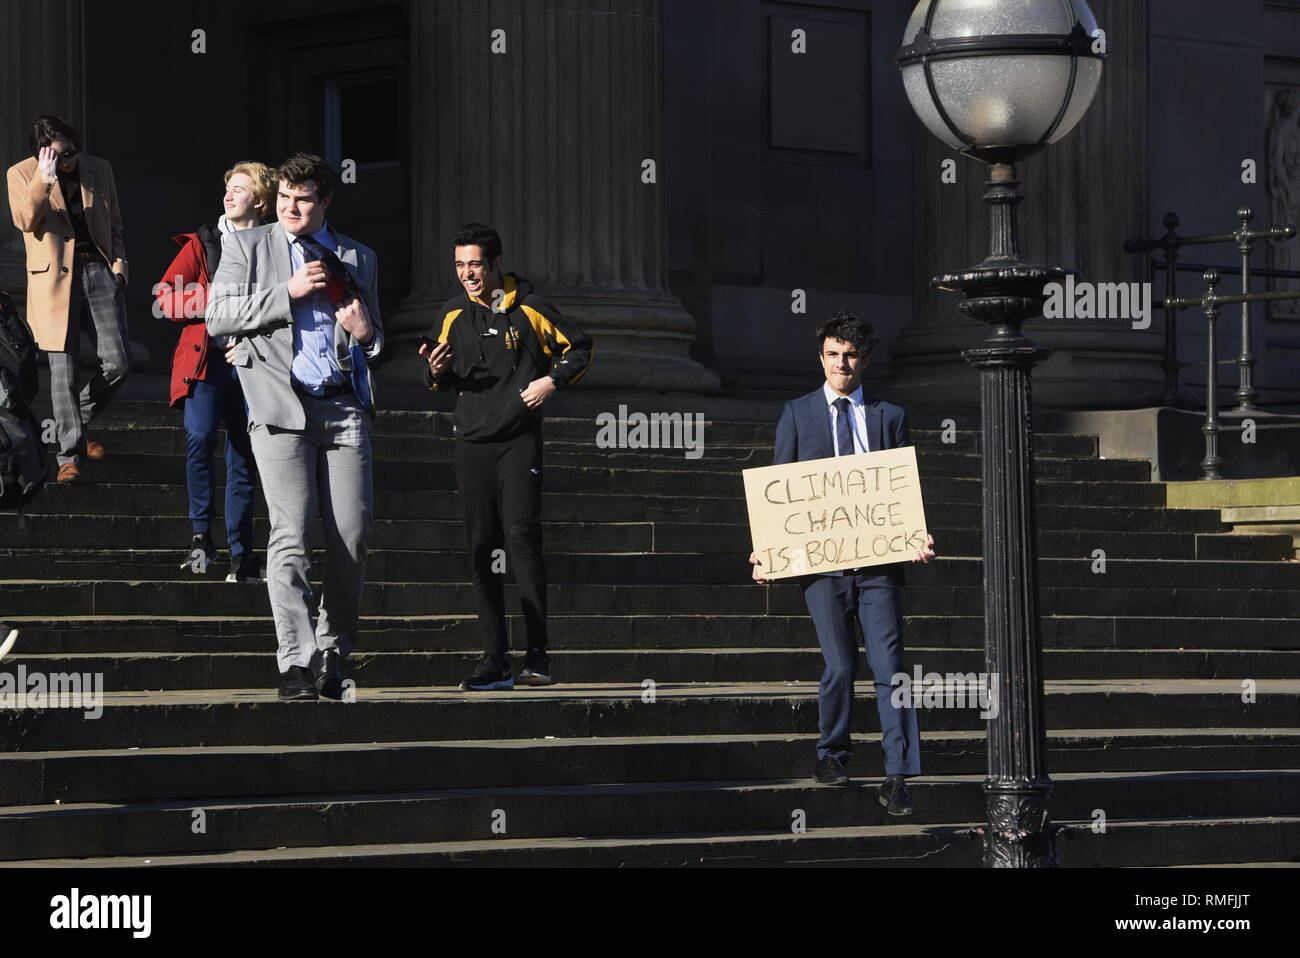 Liverpool, UK, Friday 15th February 2019, Student strike organised by a student grassroots movement, UK Student Climate Network and Schools 4 Climate Action with flags and placards on St George's Plateau, Liverpool city centre. Credit David J Colbran / Alamy Live News Stock Photo